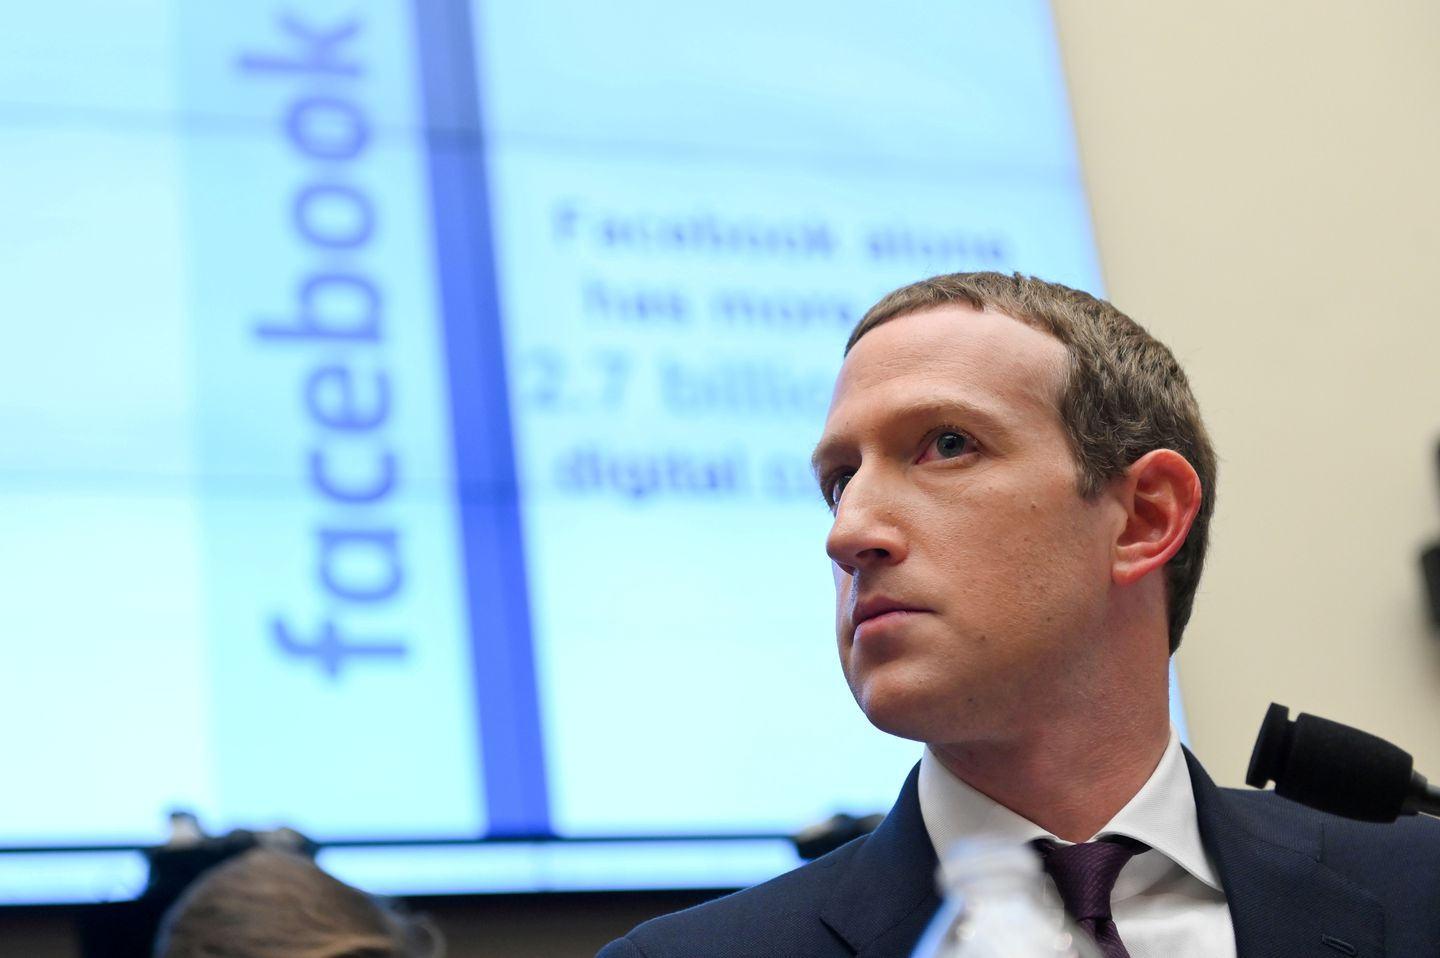 content/lens/i-worked-on-political-ads-at-facebook-they-profit-by-manipulating-us/image.jpg